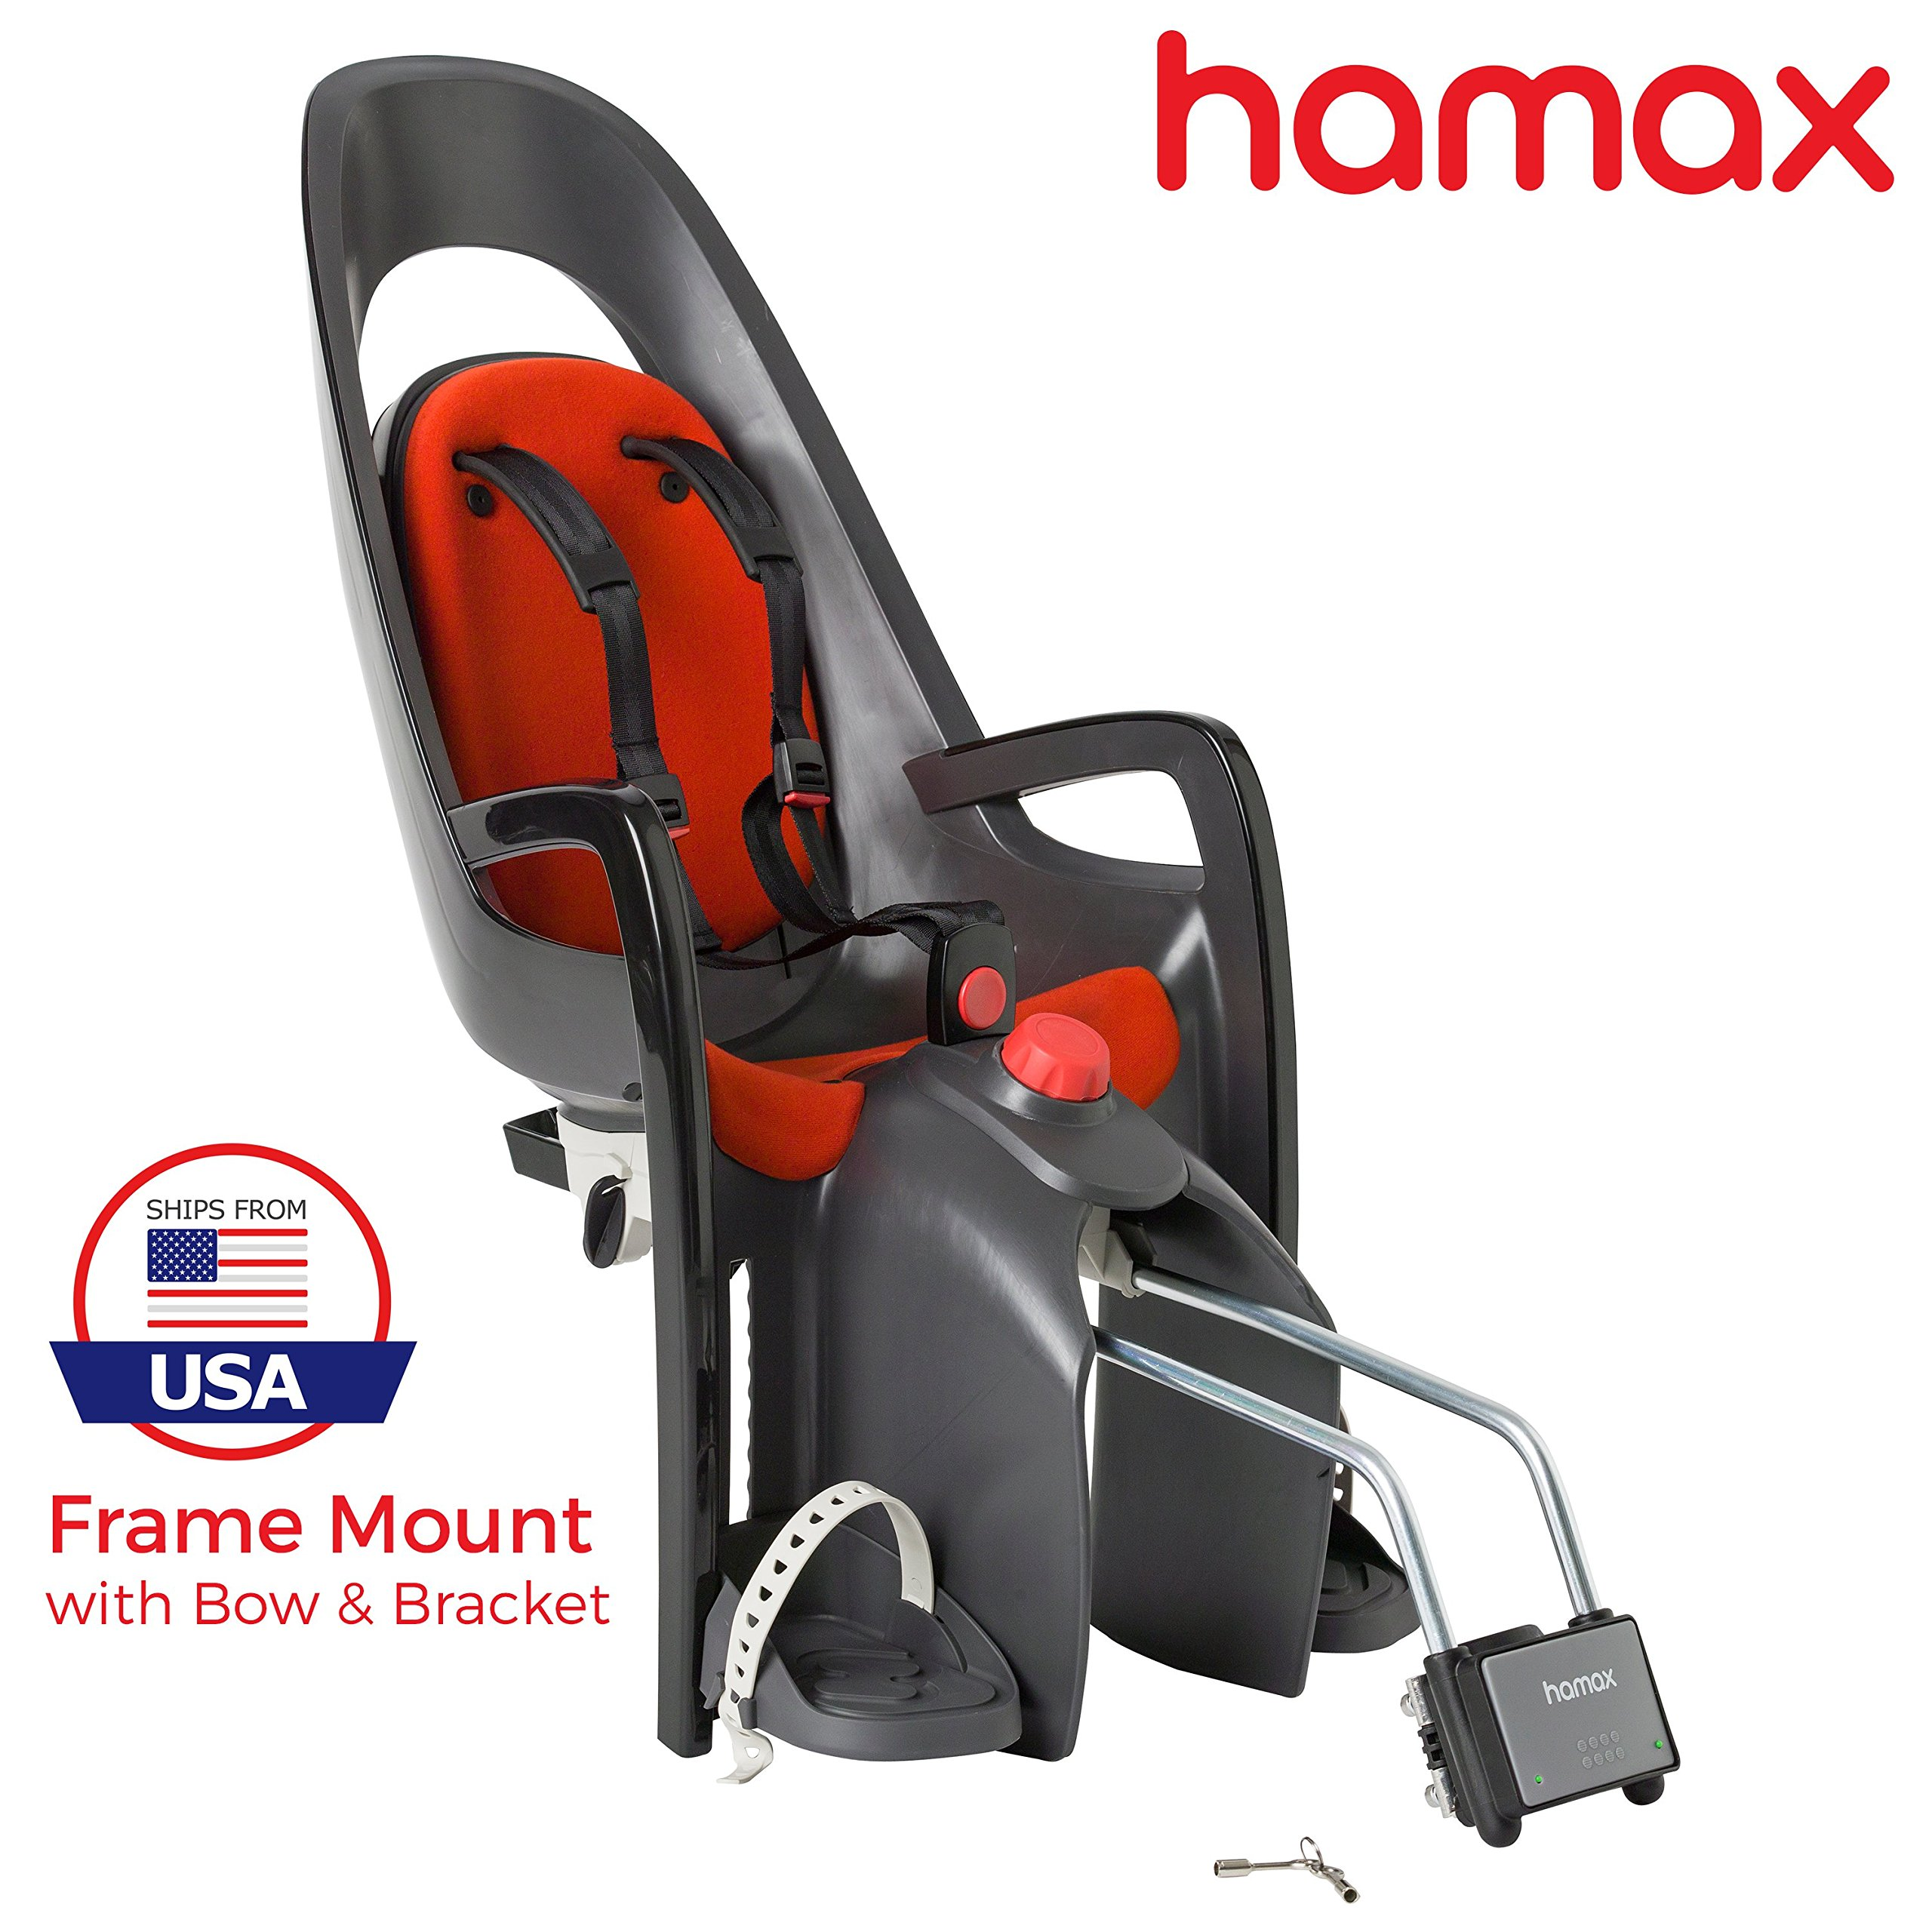 Hamax Caress Rear Child Bike Seat (Grey/Red, Frame Mount) by Hamax (Image #1)